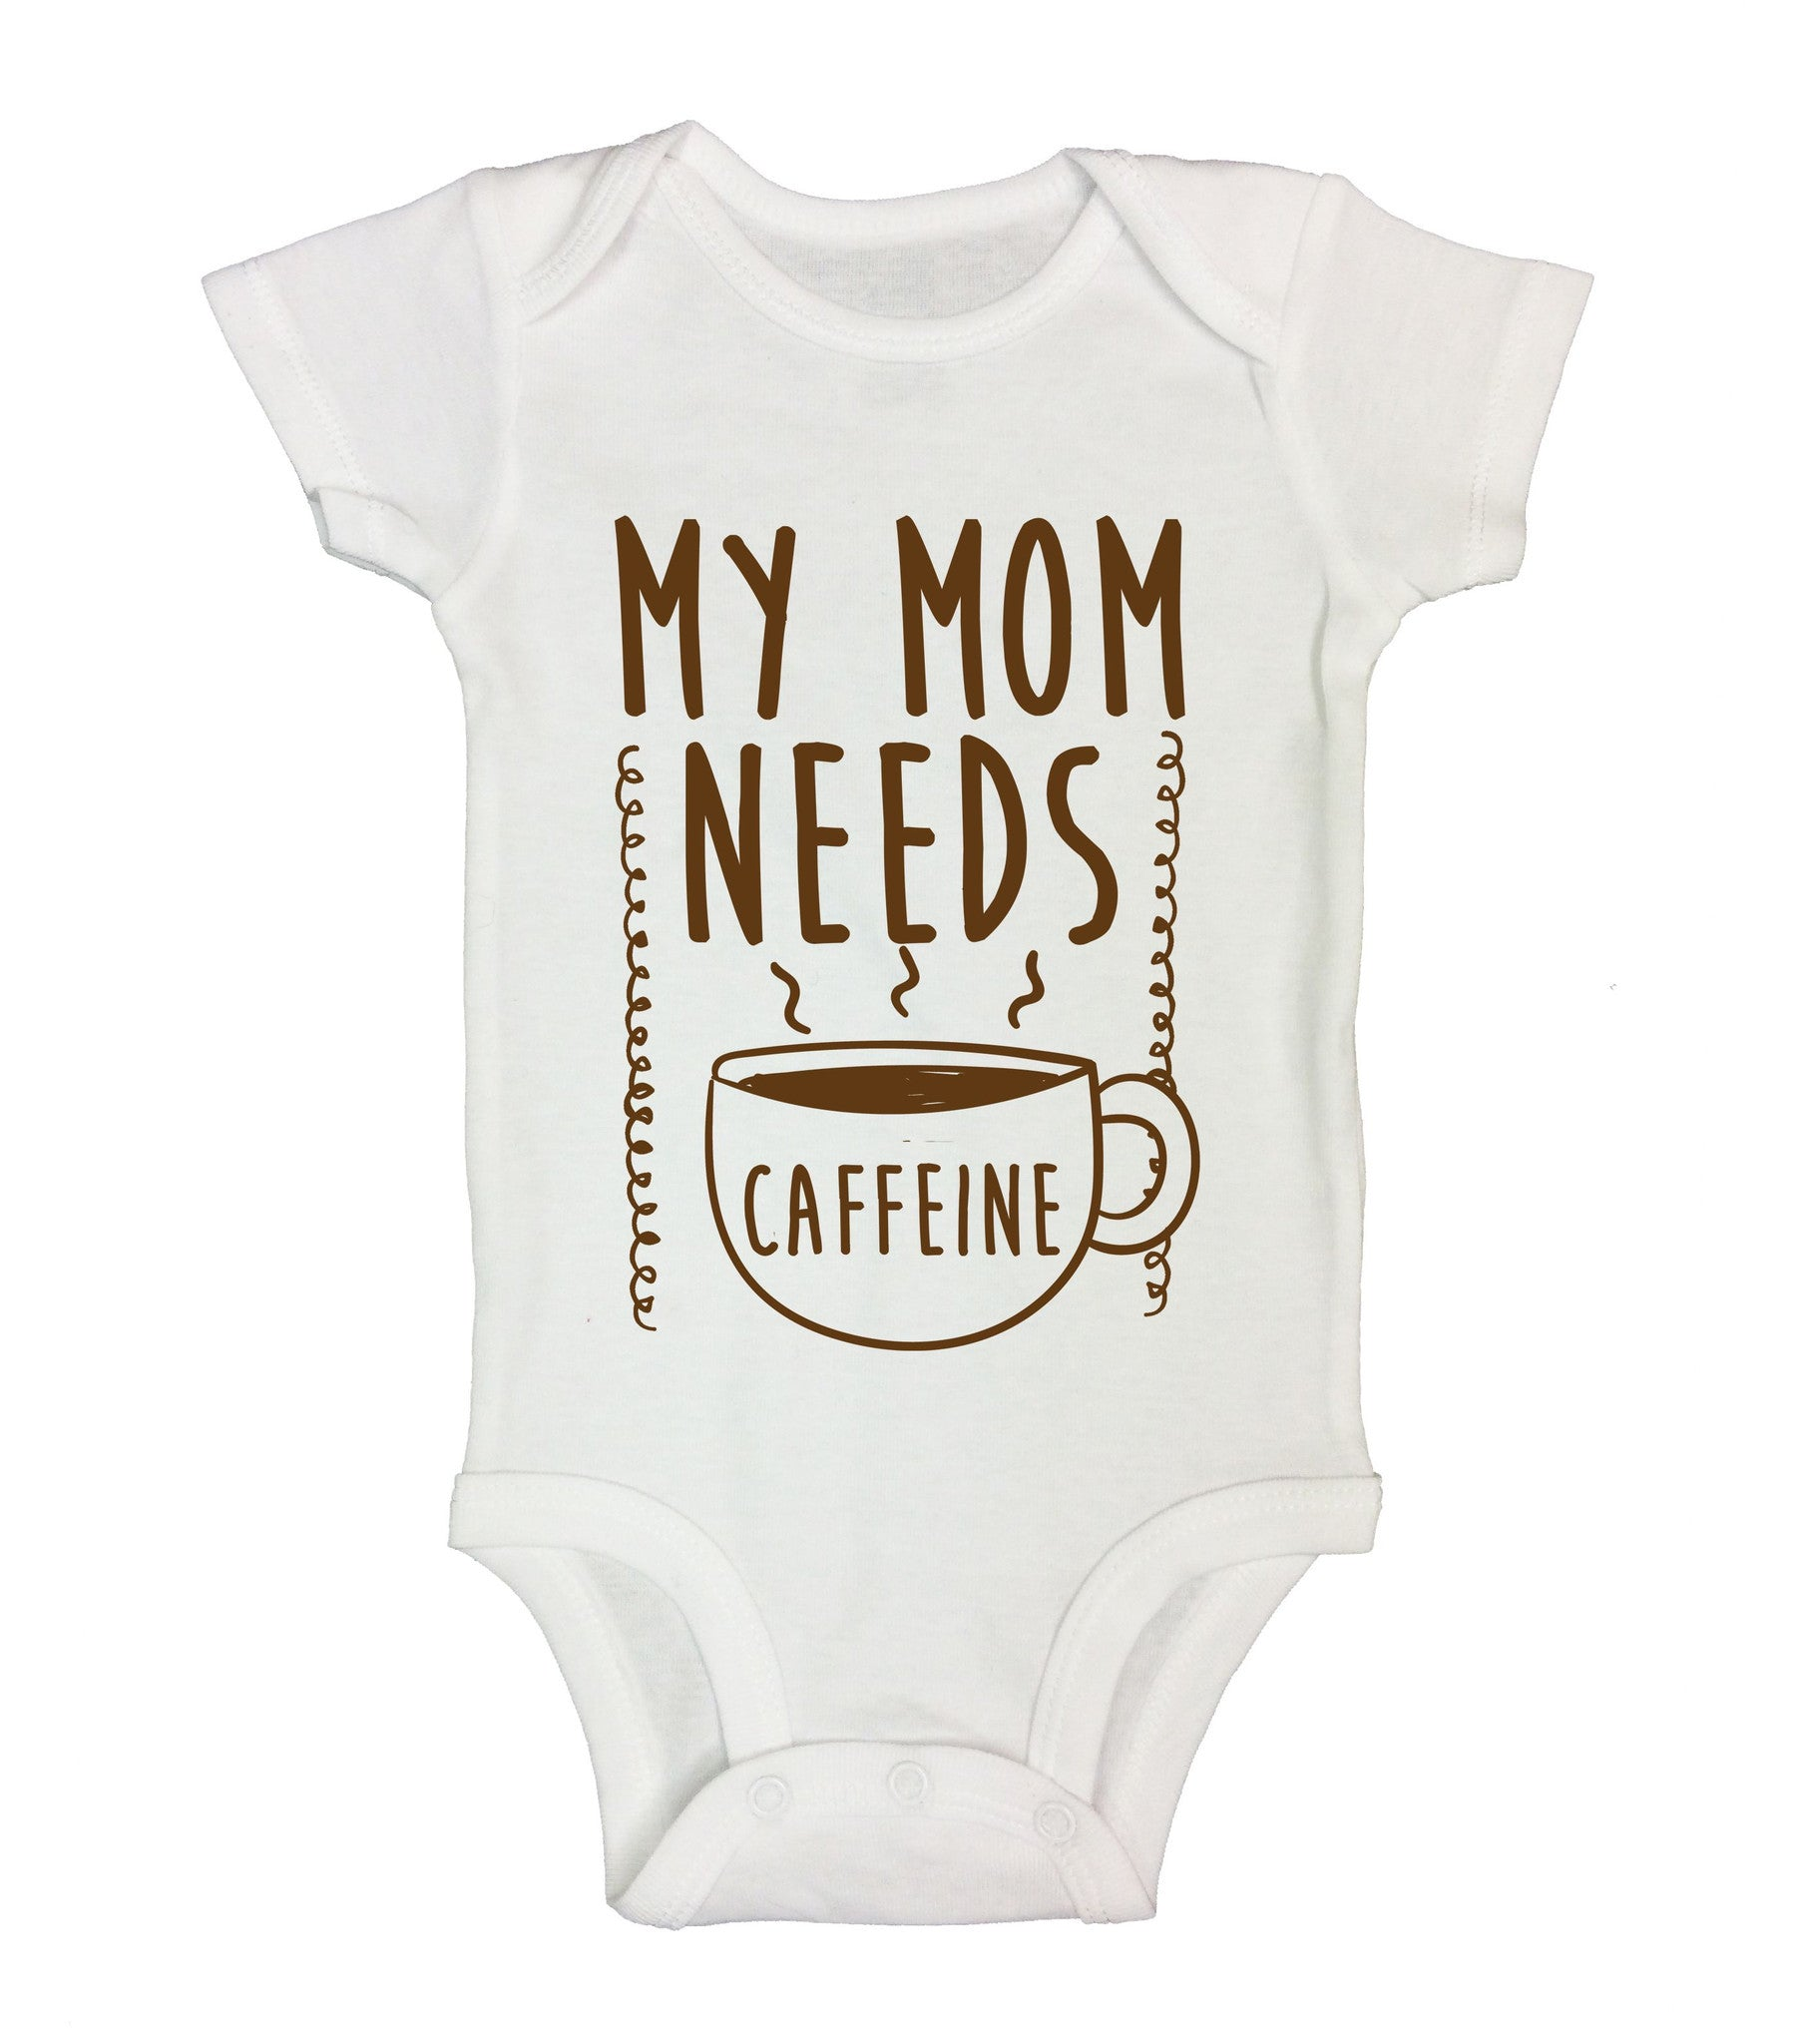 My Mom Needs Caffeine Funny Kids Onesie - B204 - Funny Shirts Tank Tops Burnouts and Triblends  - 2